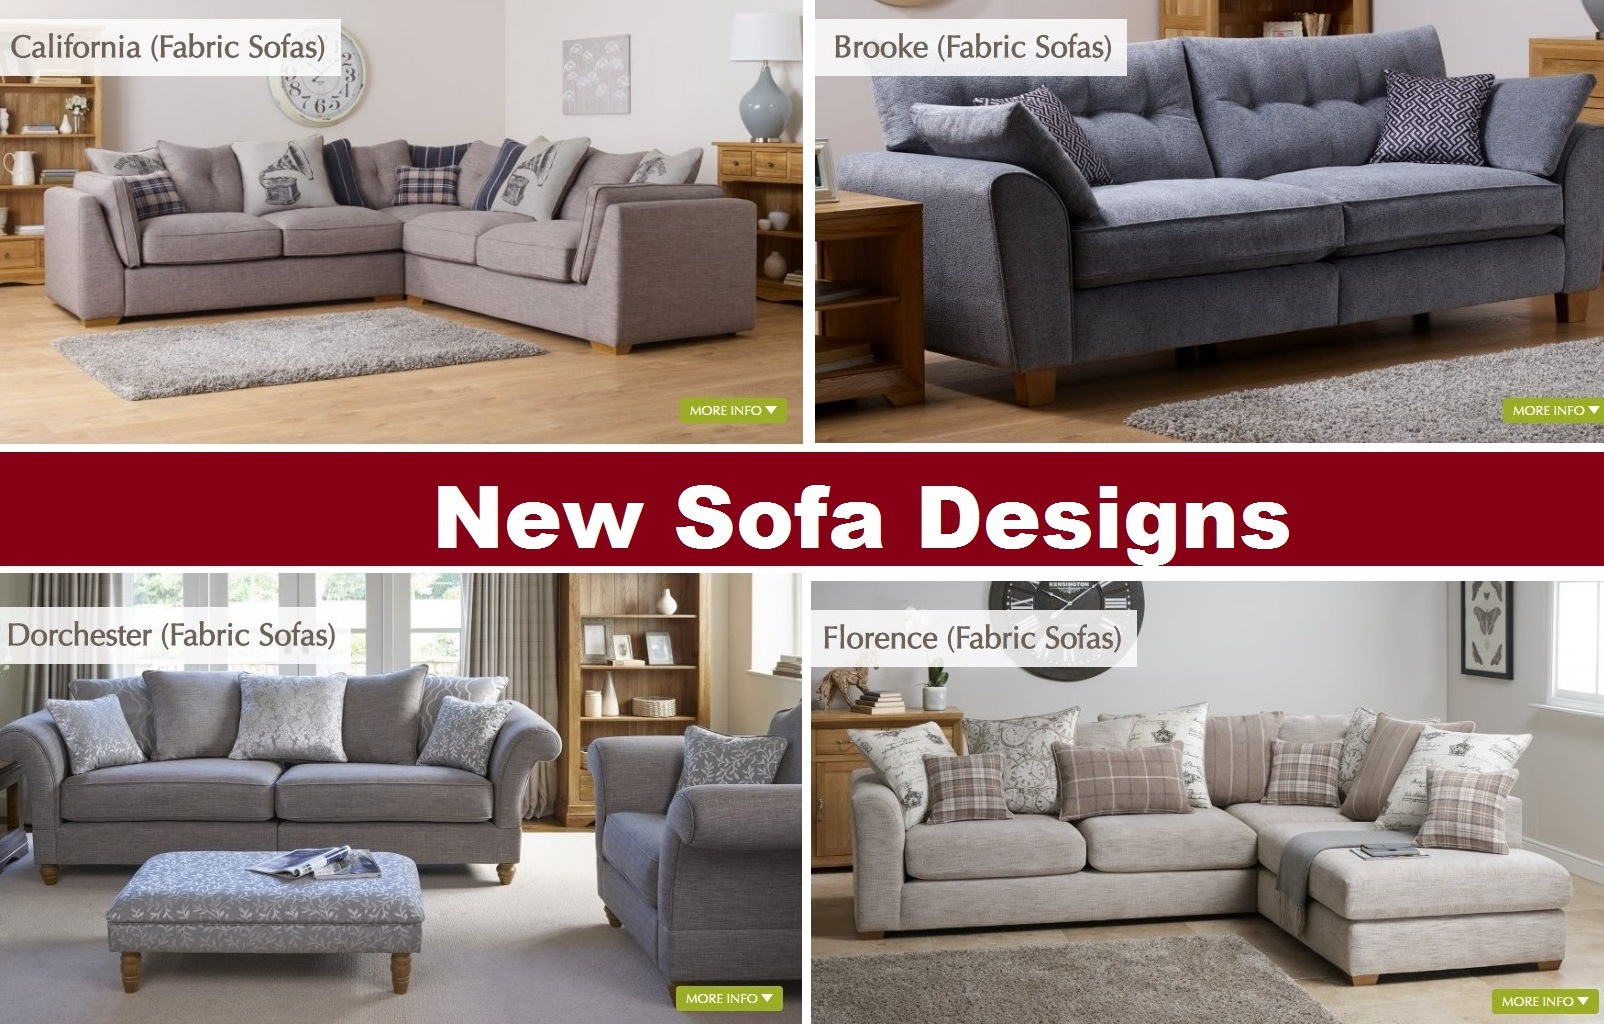 New Sofa Designs